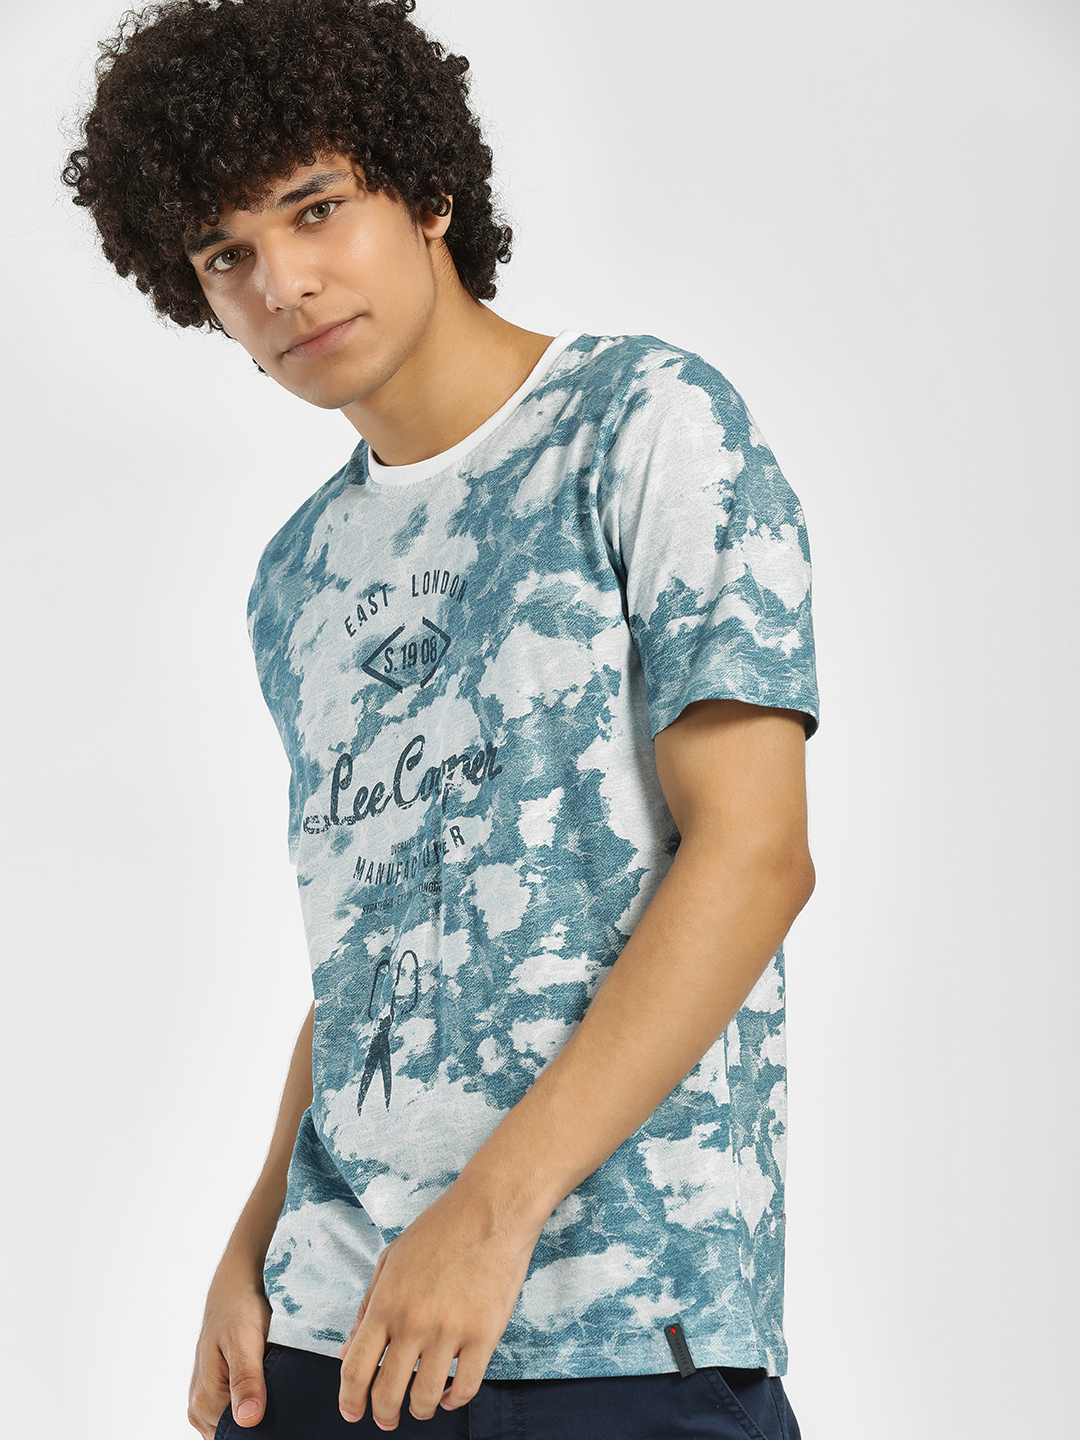 Lee Cooper Blue Washed Camo Print T-Shirt 1